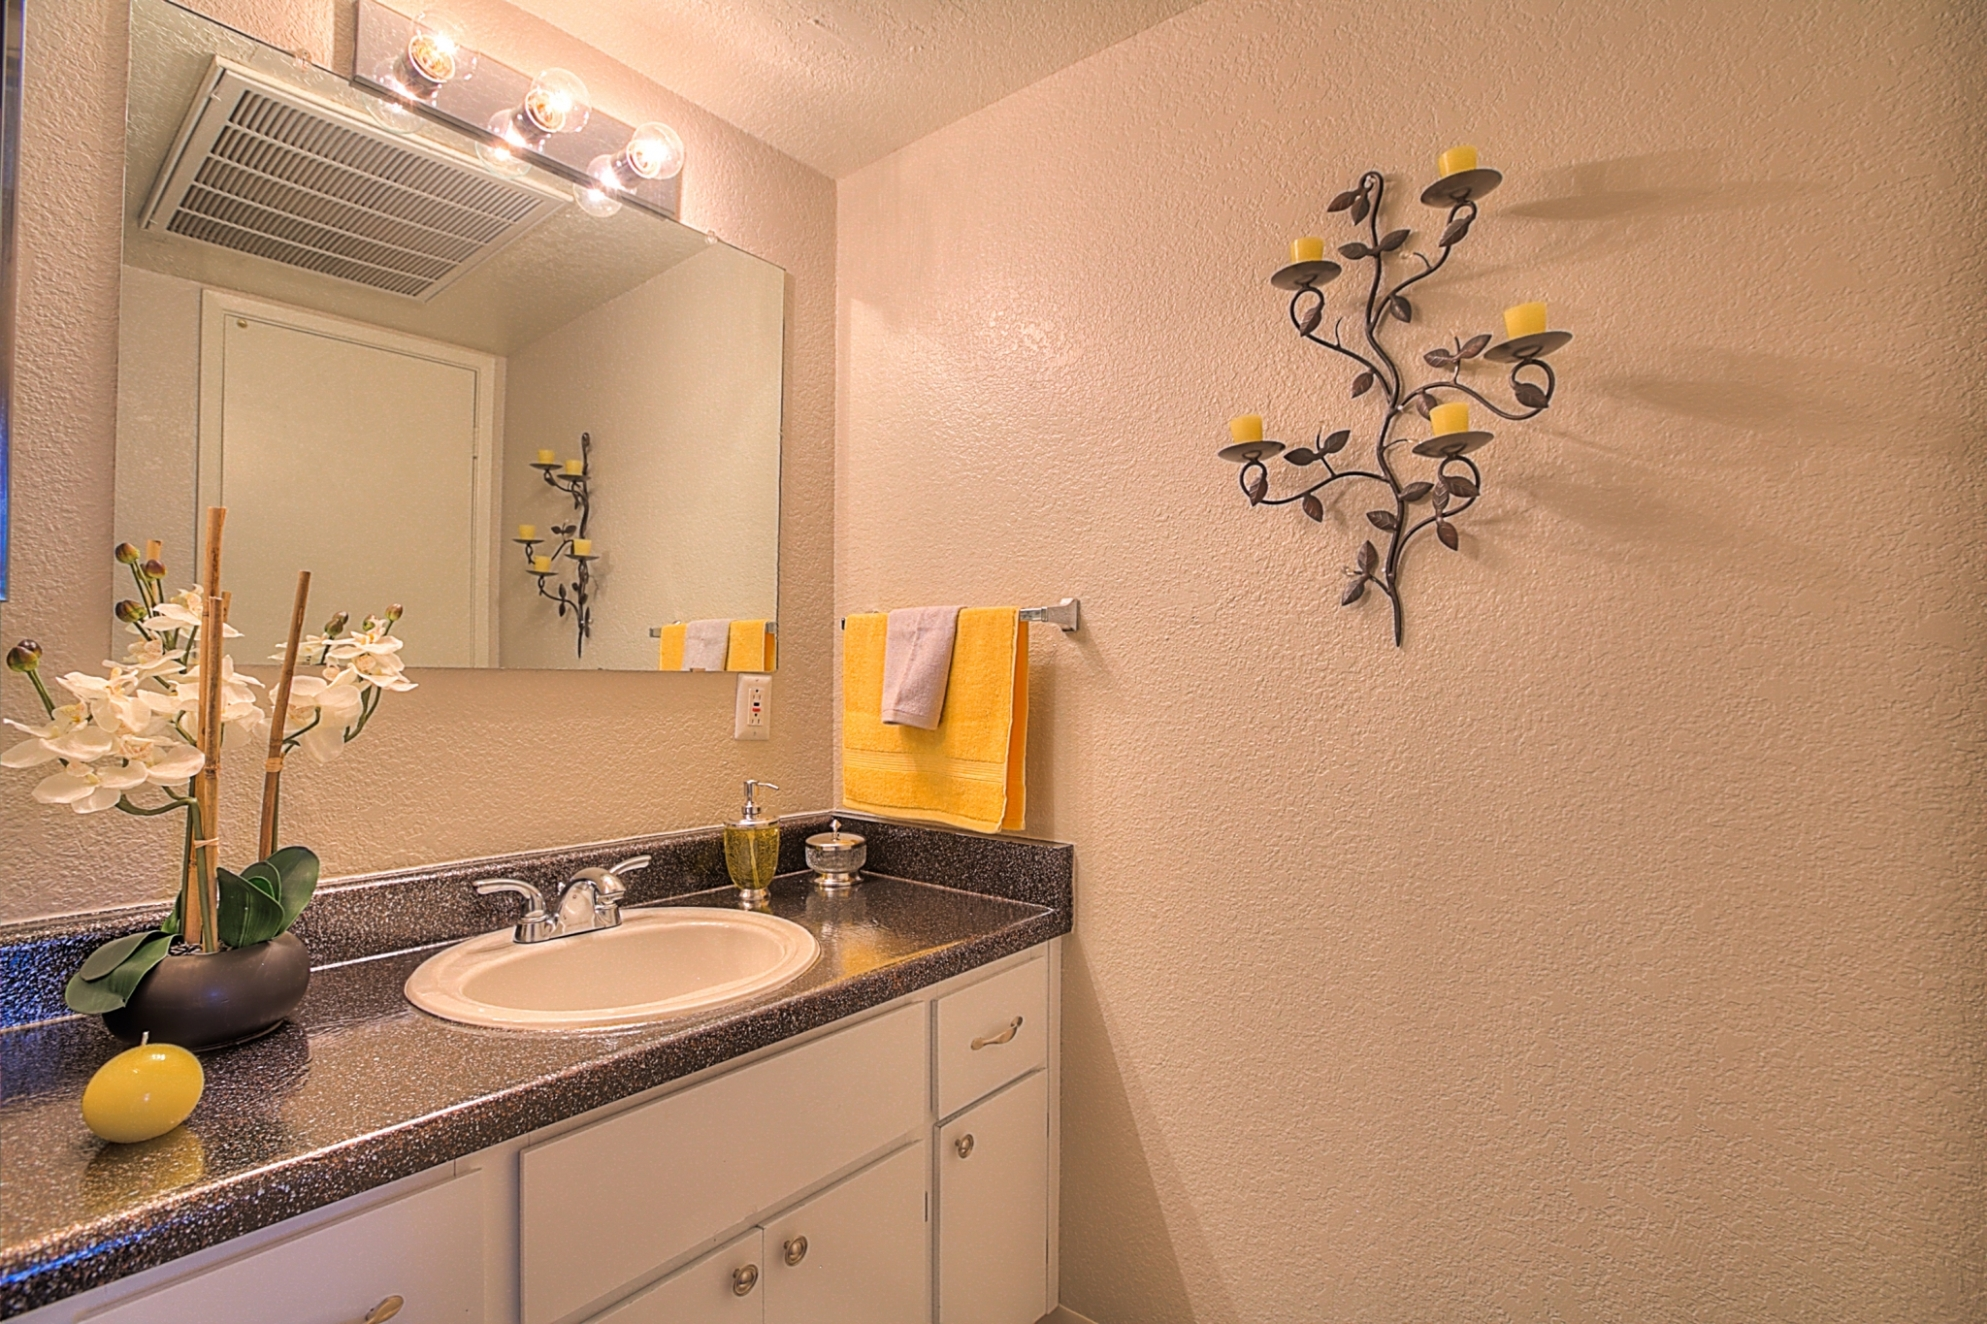 Solid Cultured Marble Bathroom Counter Tops at Eagle Pointe Apartments, Albuquerque, NM